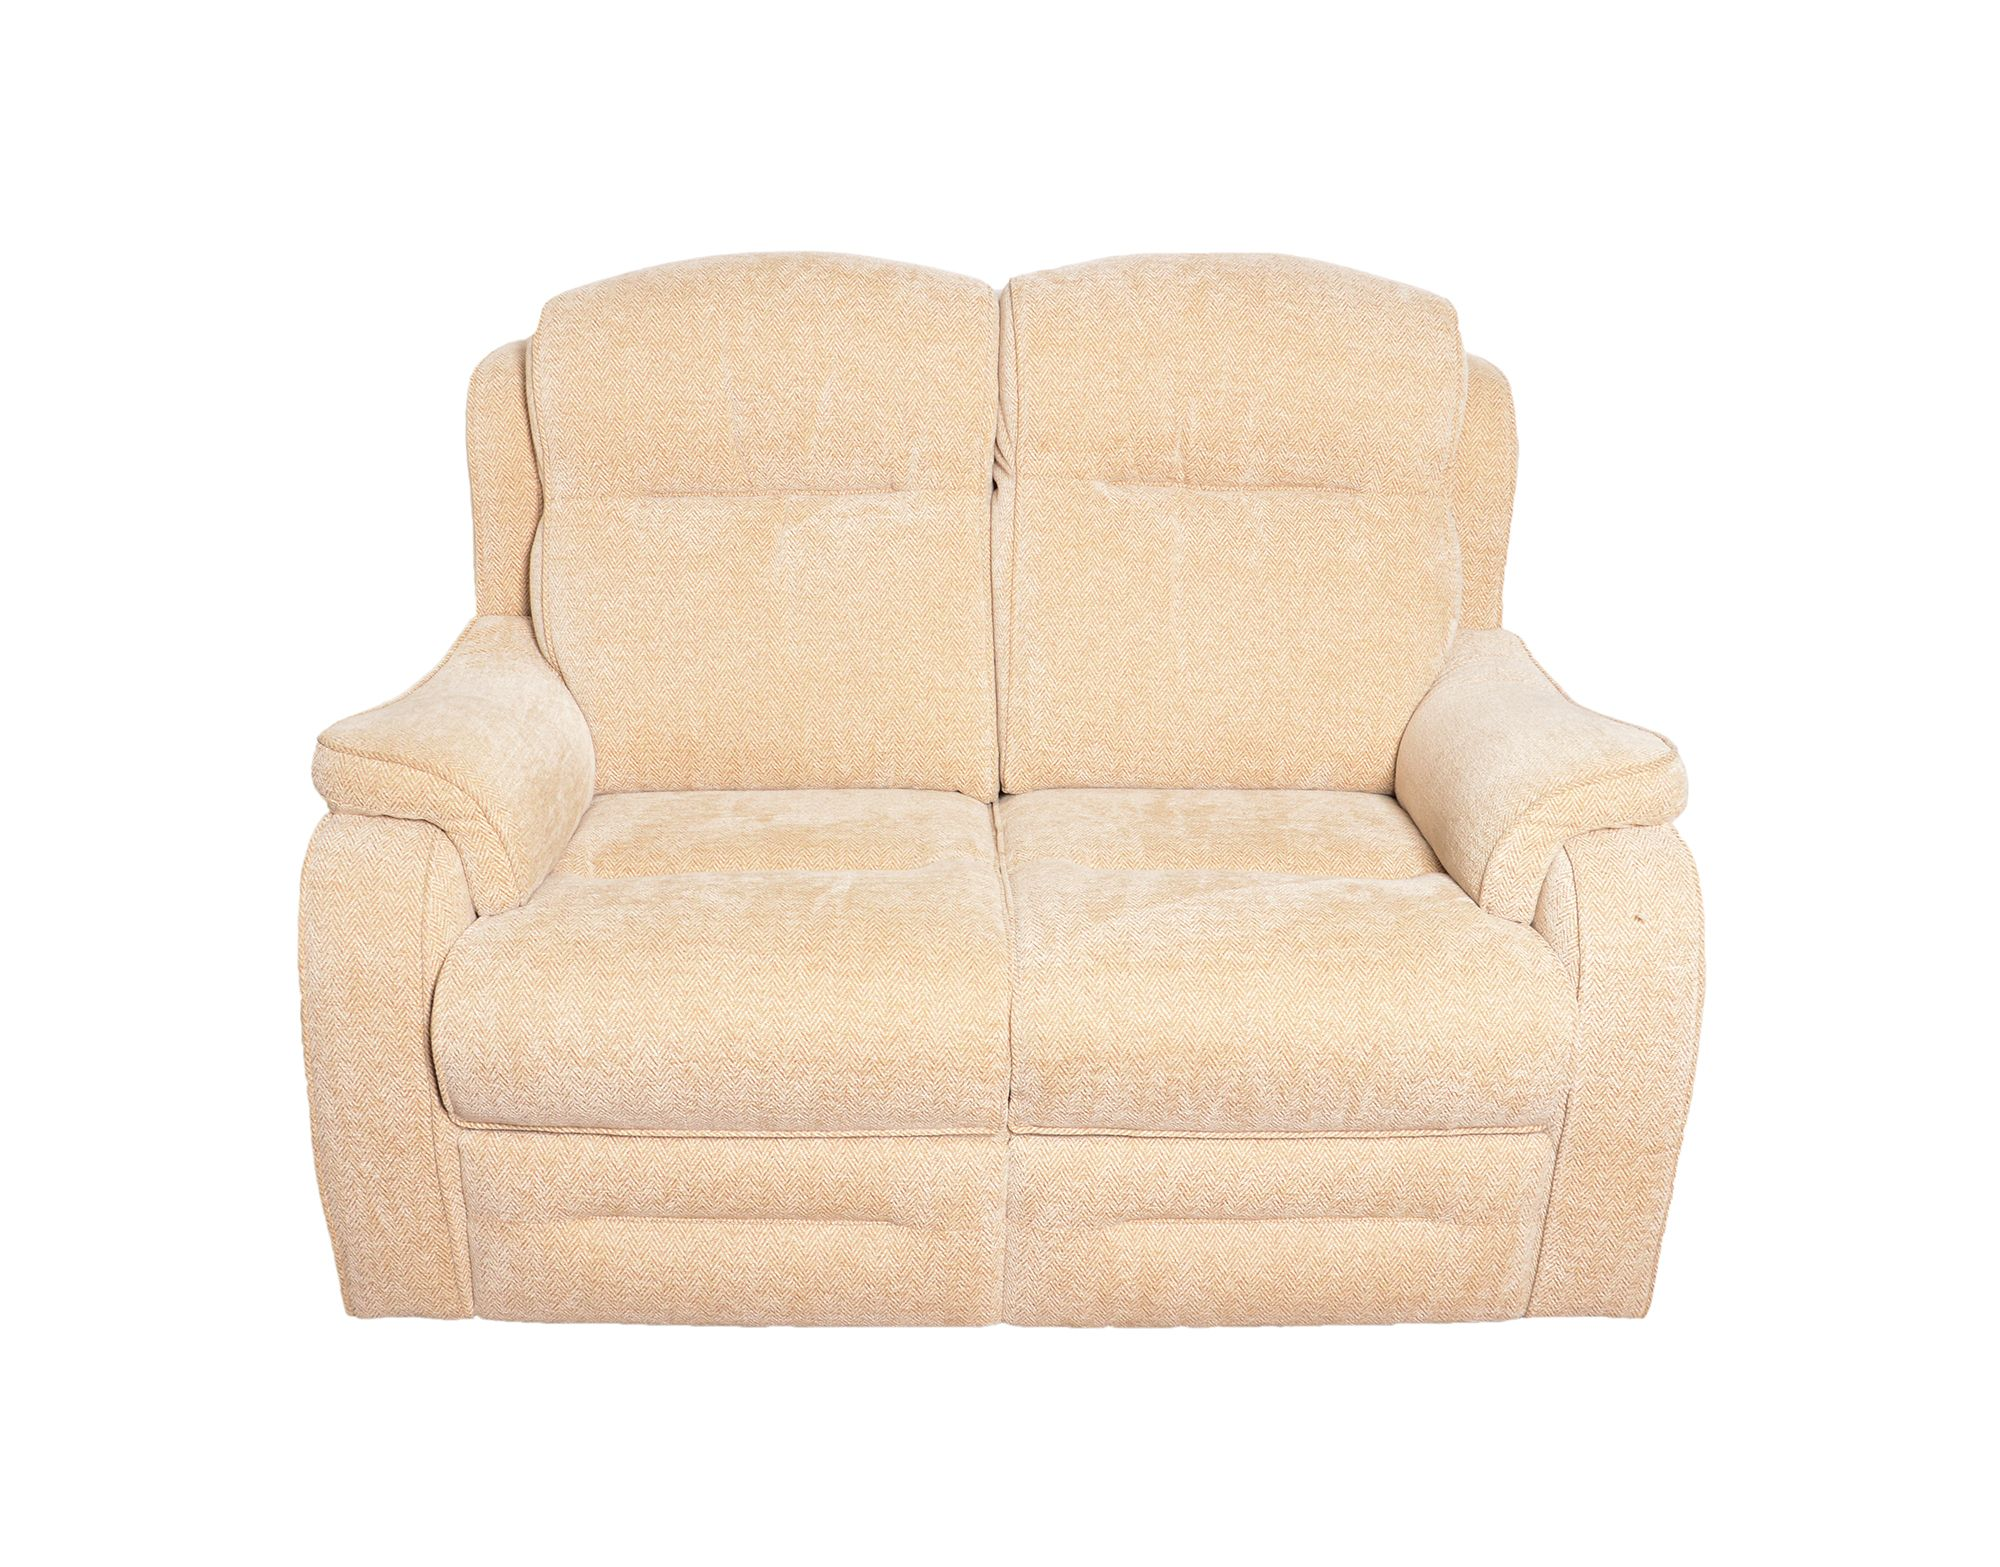 Enjoyable Parker Knoll Boston 2 Seater Manual Reclining Sofa Fabric A Gmtry Best Dining Table And Chair Ideas Images Gmtryco